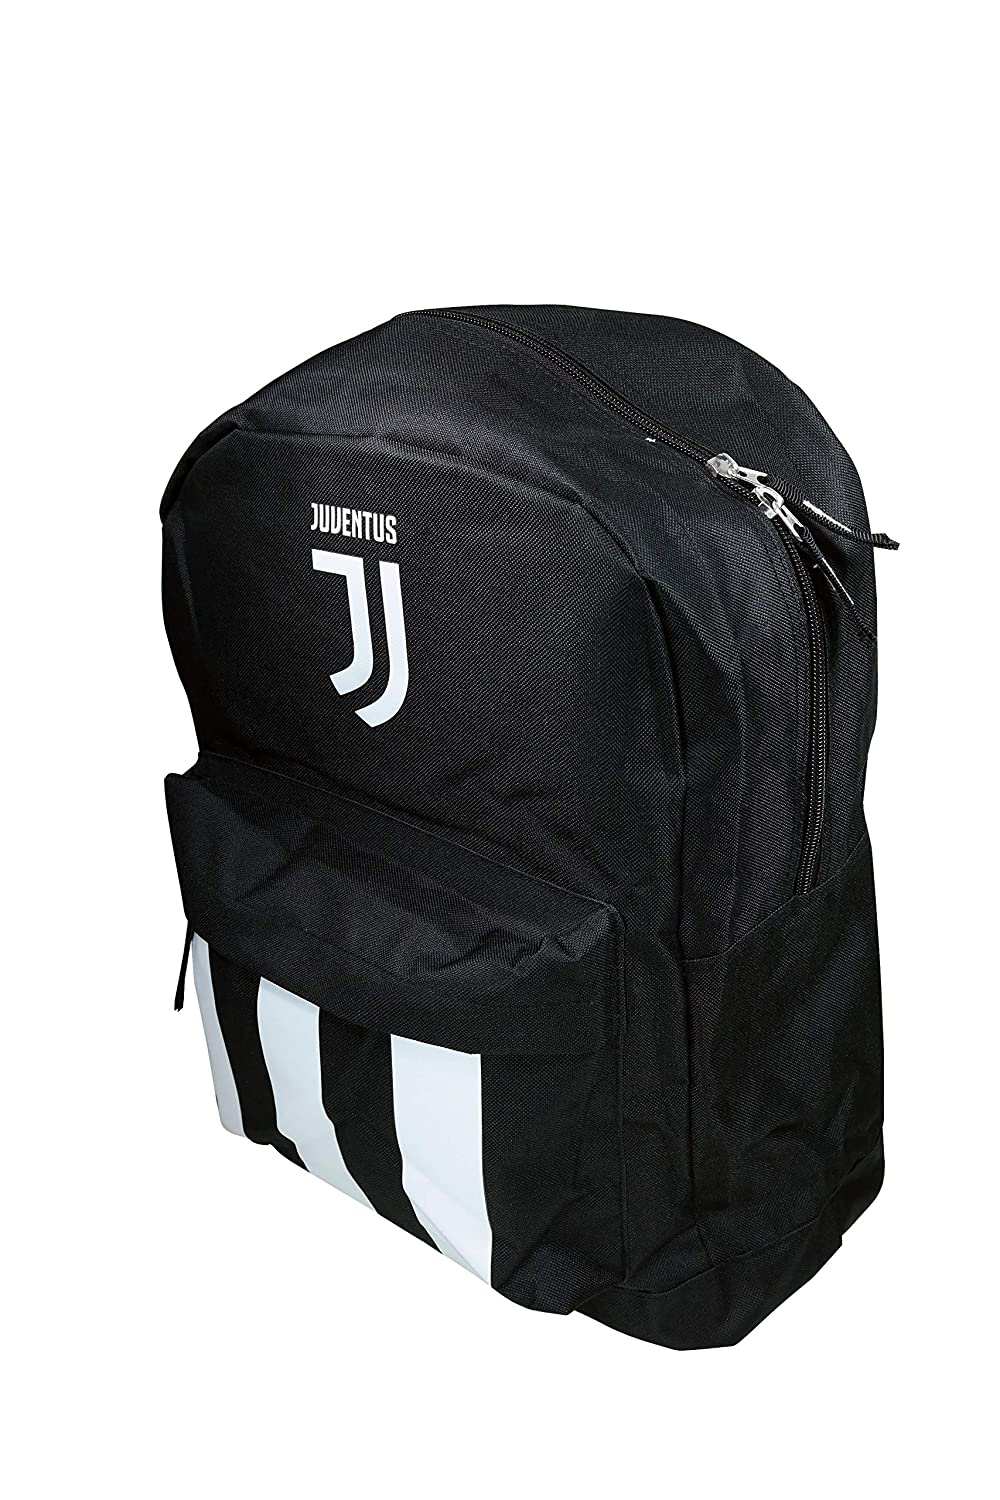 Icon Sports Juventus F.C Authentic Official Licensed Soccer Backpack 04